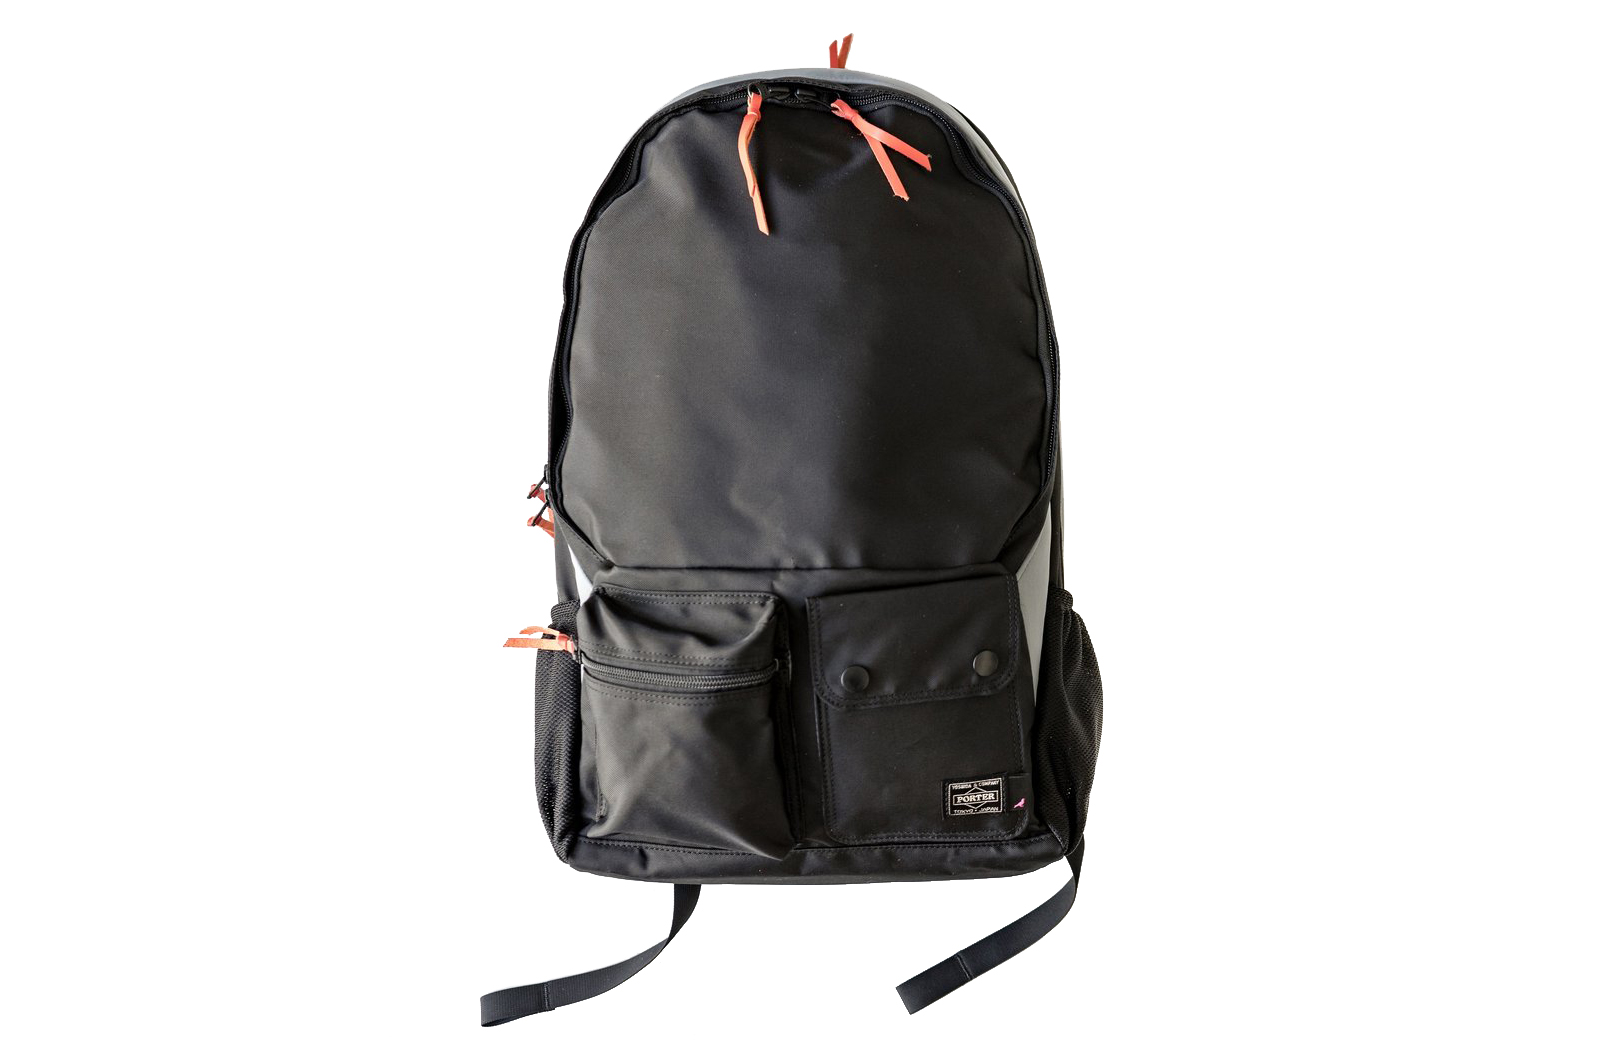 Staple Porter daypack backpack collaboration 20th anniversary jeff leather nylon pigeon brand twenty years two decades 550 usd laptop